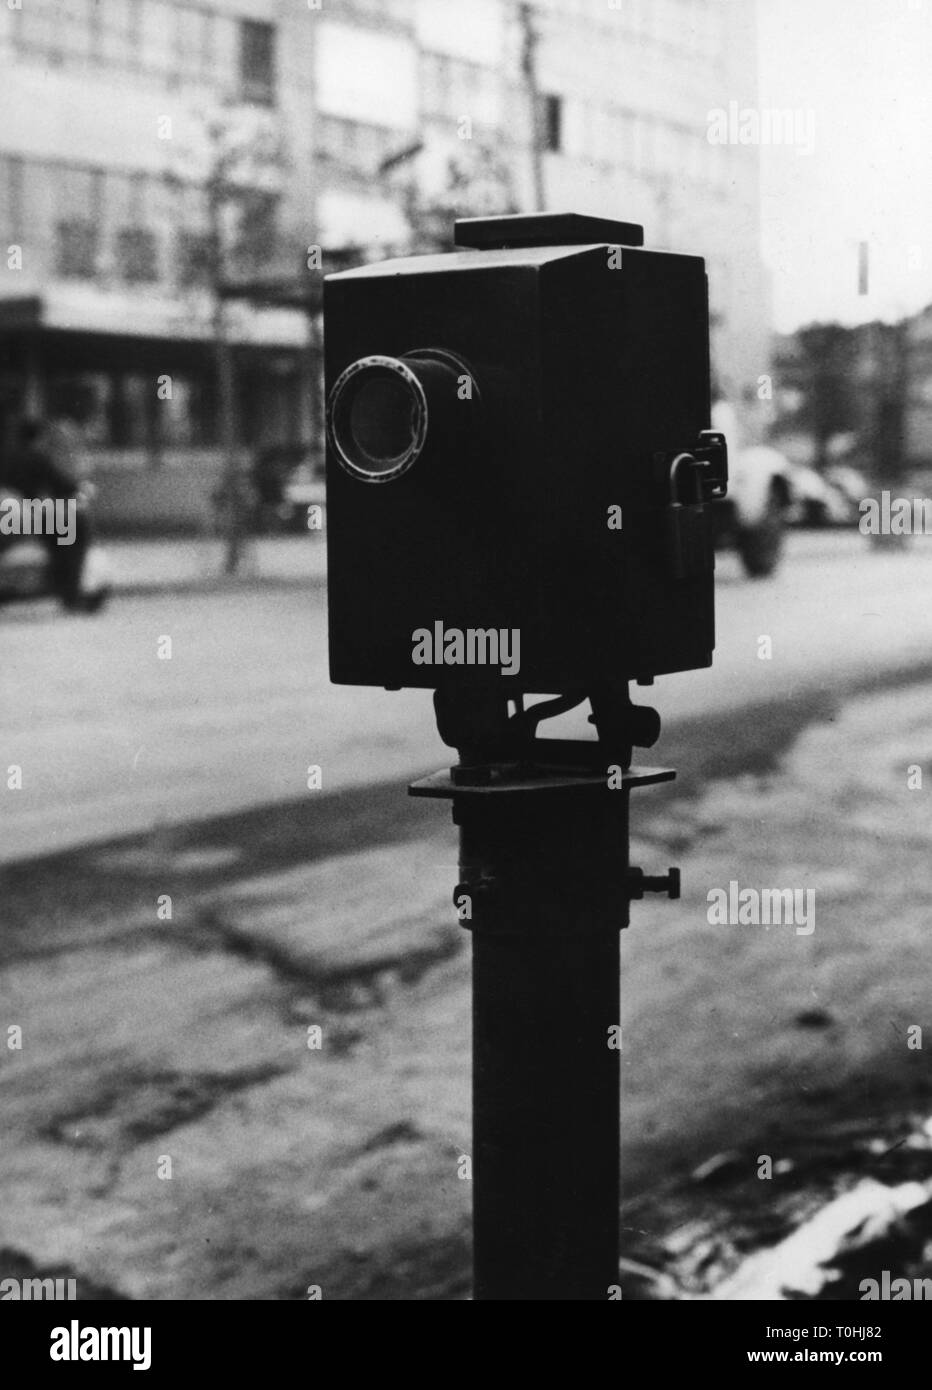 geography / travel, Japan, traffic / transport, first automatic traffic light signal of Japan, Tokyo, 1950s, Additional-Rights-Clearance-Info-Not-Available - Stock Image